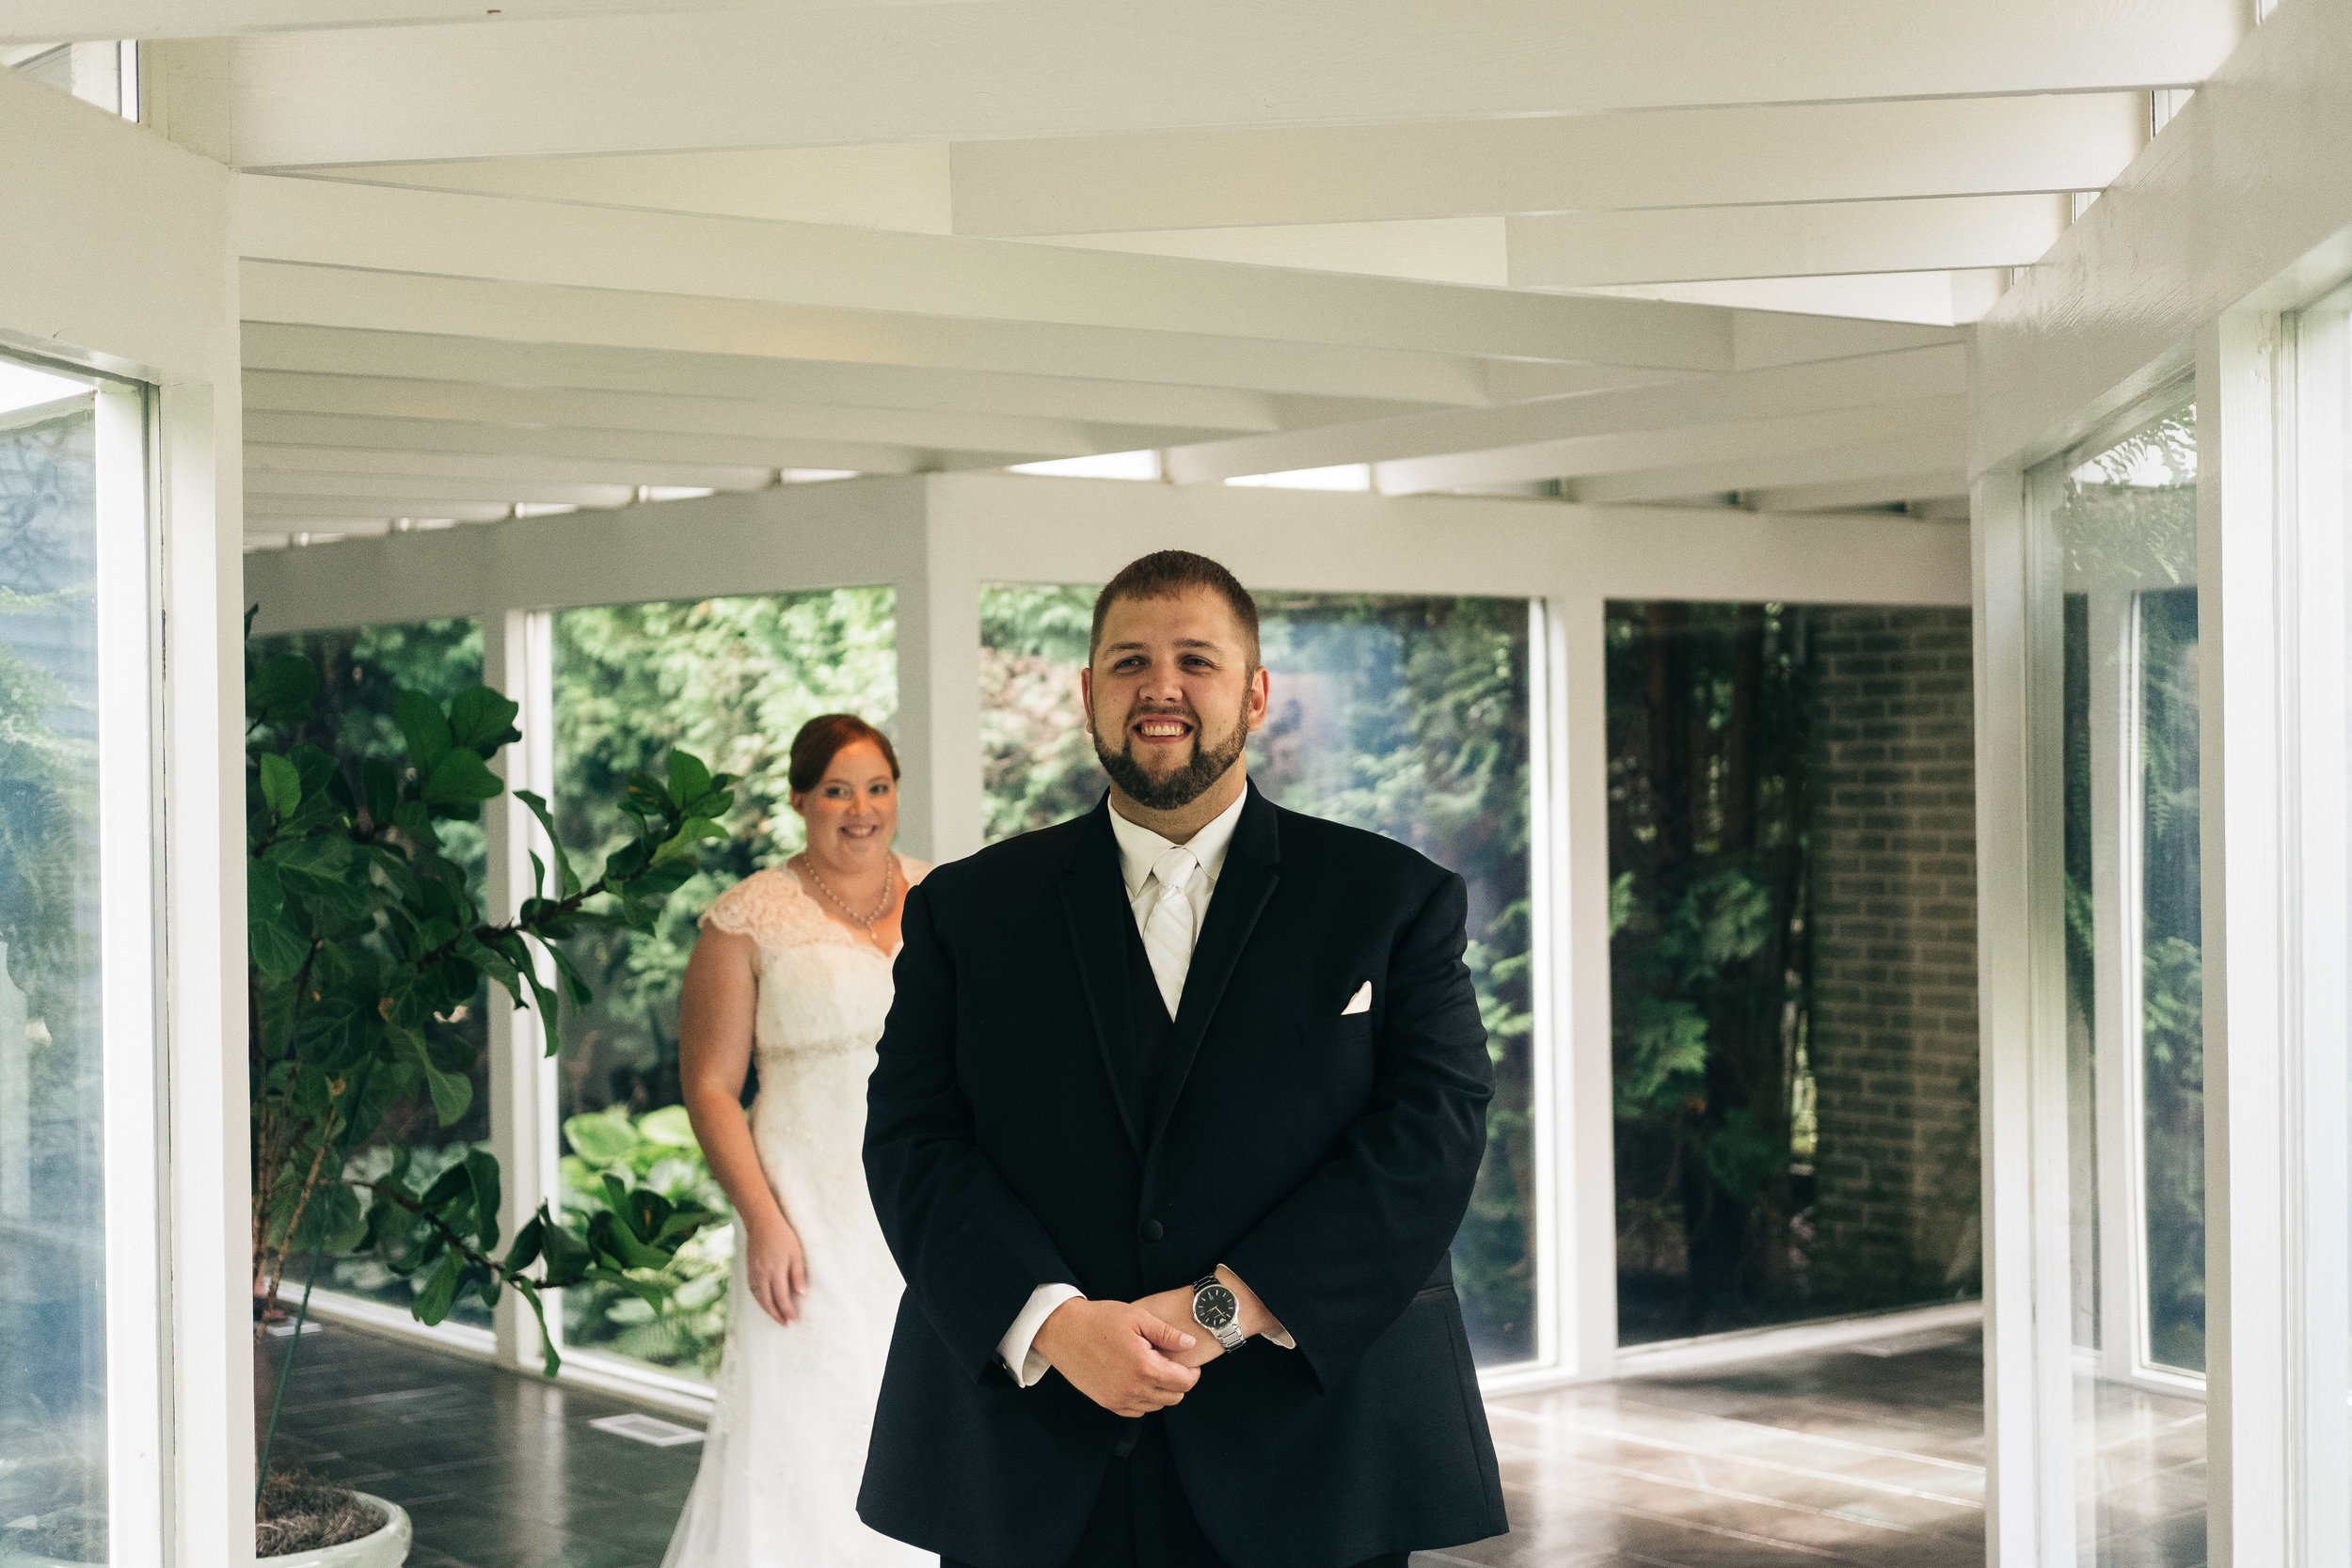 First look on wedding day at Walden Inn.